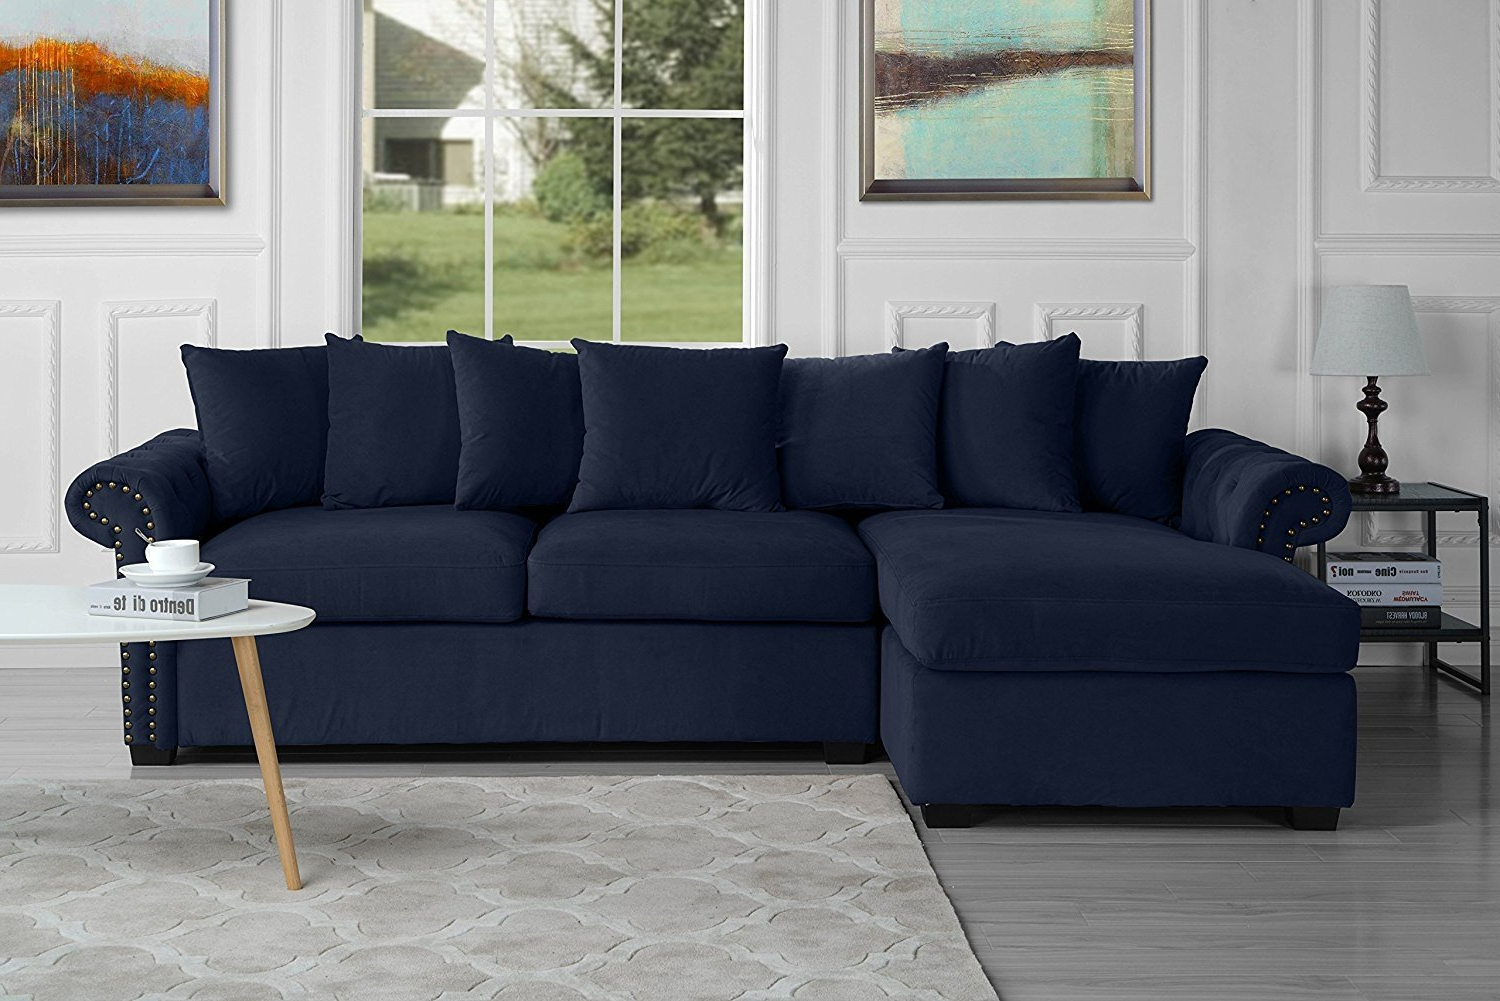 Newest Modern Large Tufted Velvet Sectional Sofa, Scroll Arm L Throughout Dream Navy 2 Piece Modular Sofas (View 8 of 15)